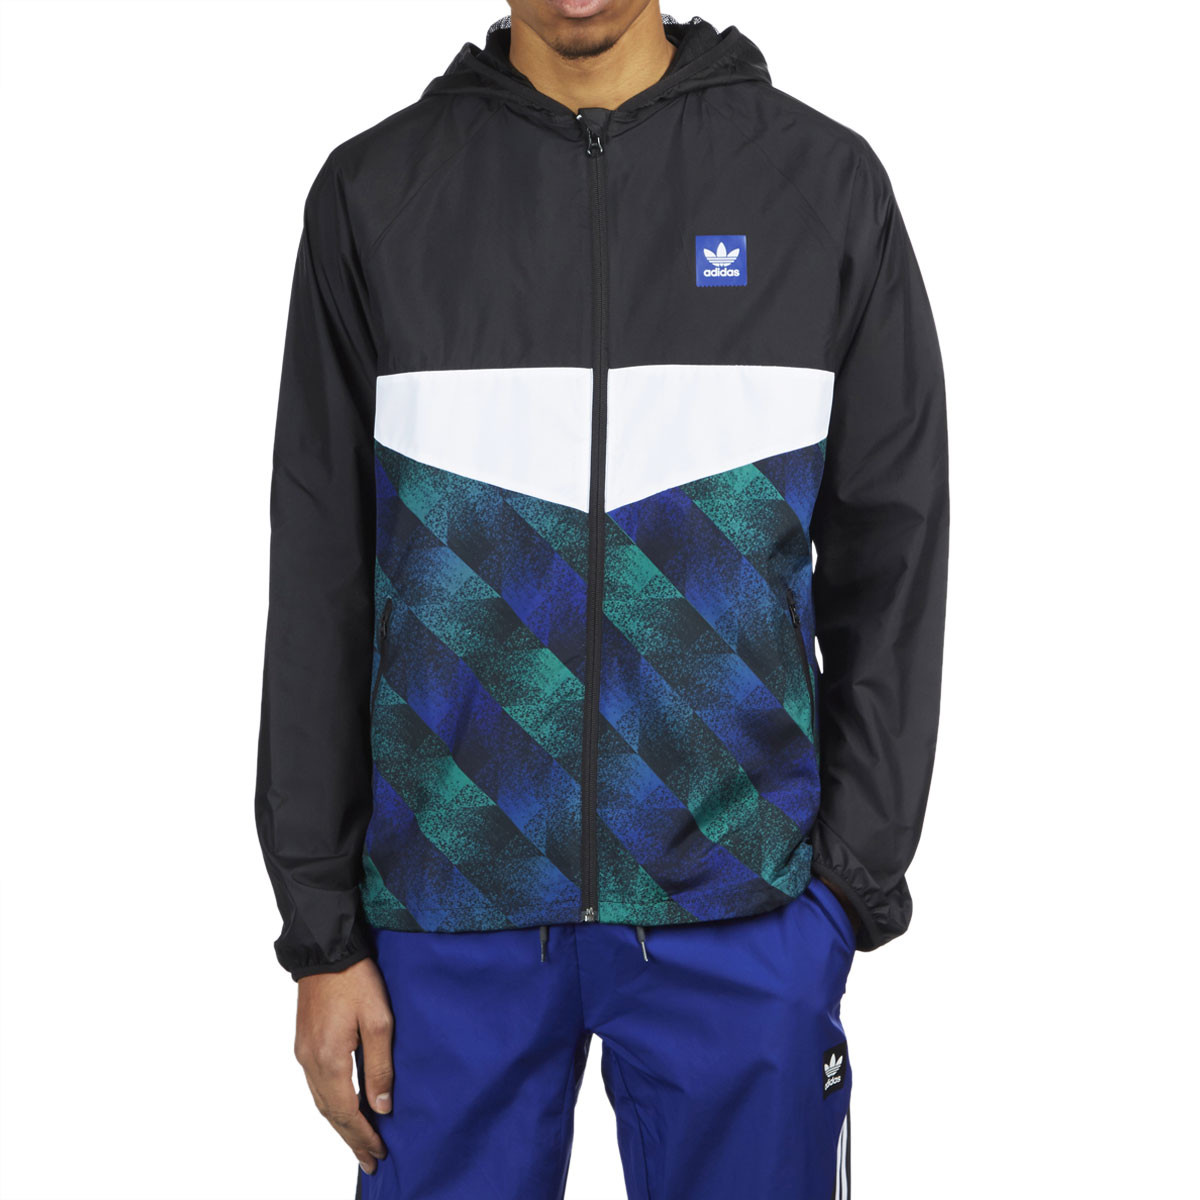 02219b35d Adidas Towning Jacket - Black/White/Action Blue/Action Green